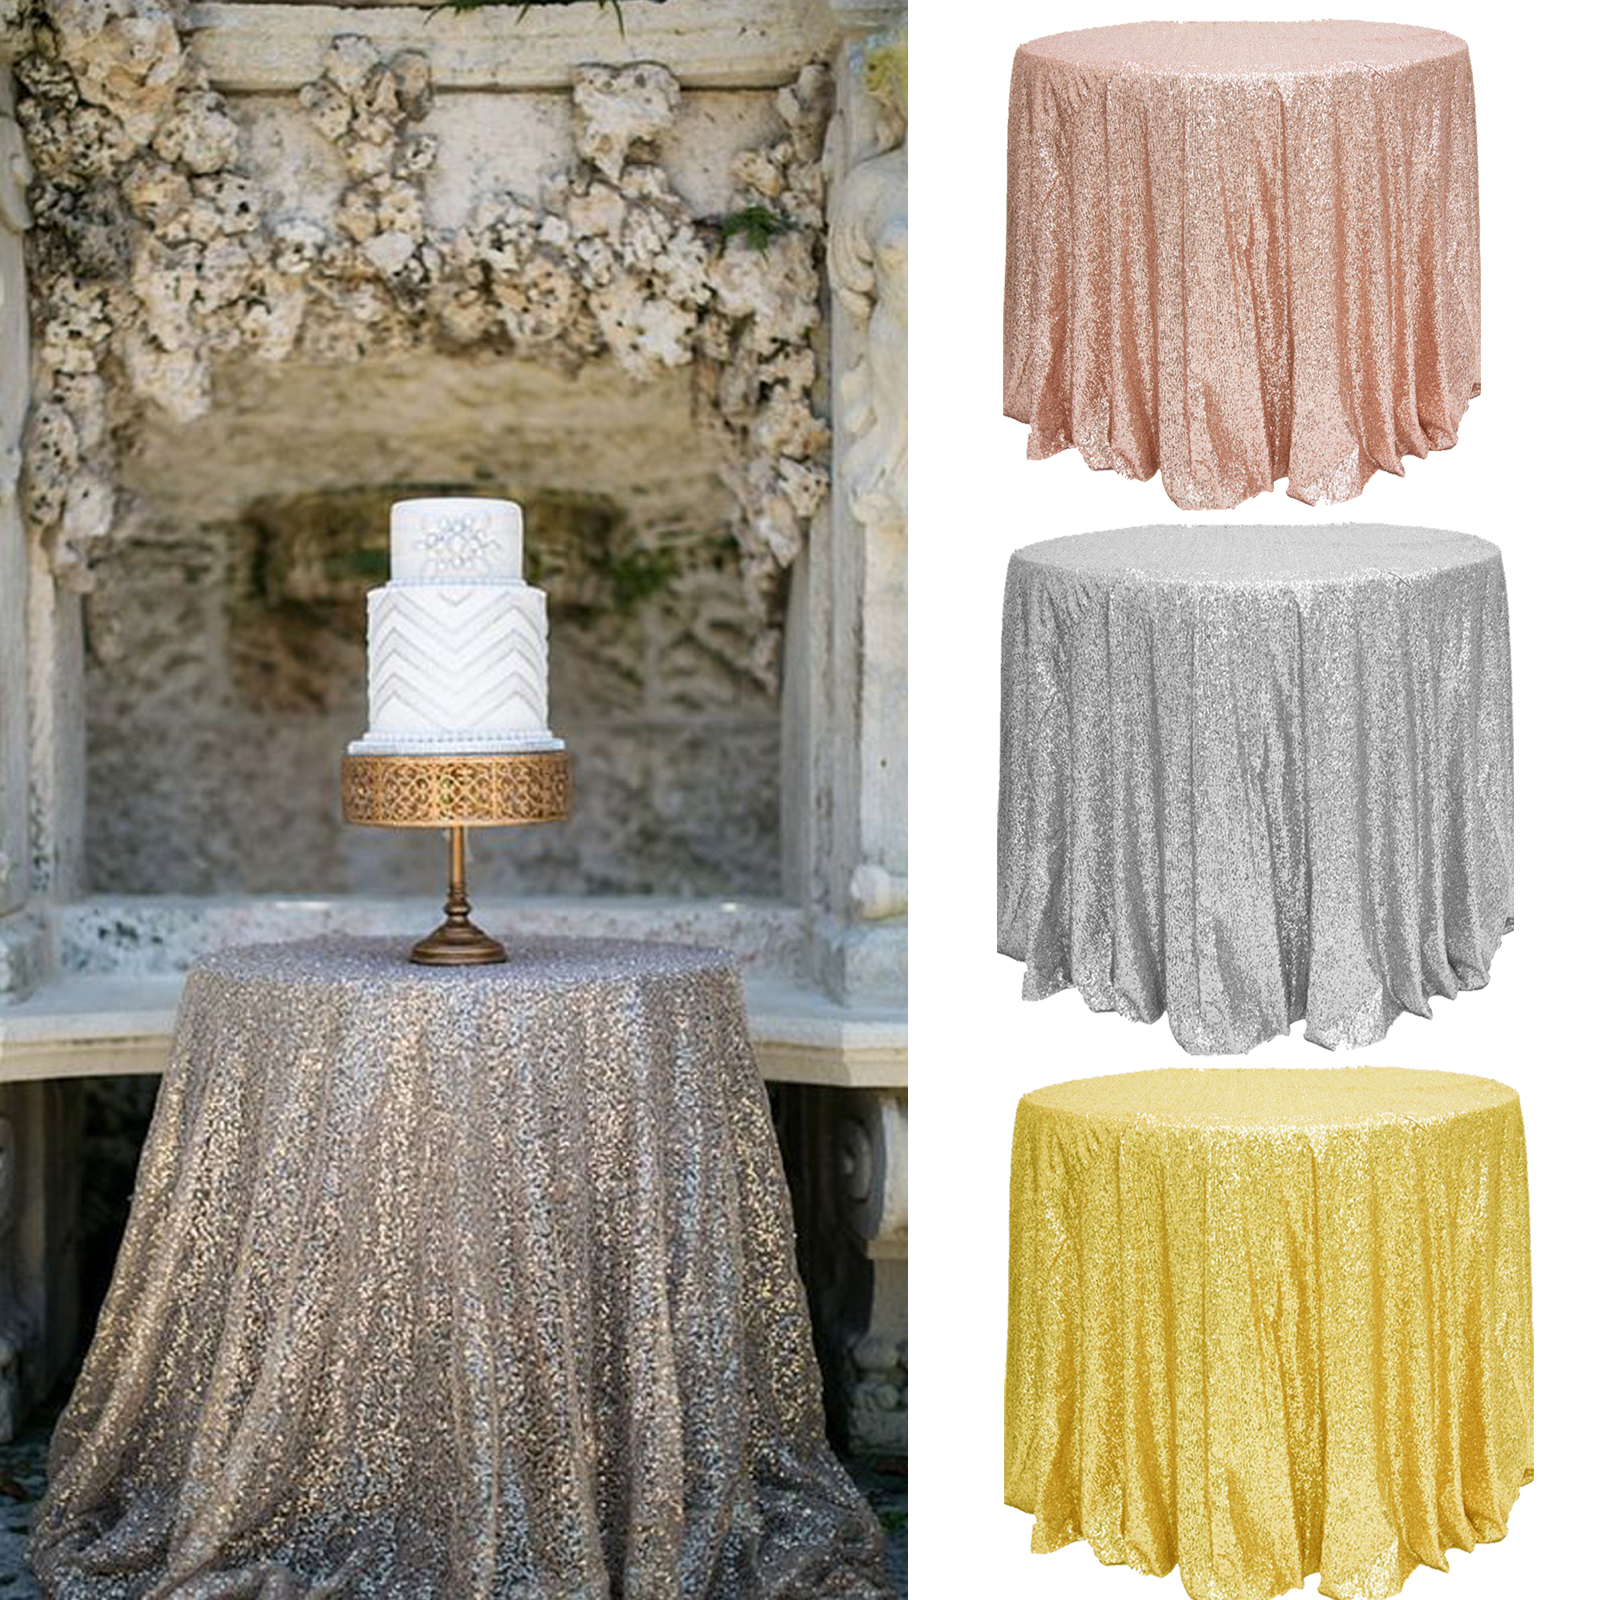 Sparkly Glitter Sequin Tablecloth Bling Table Cover Table